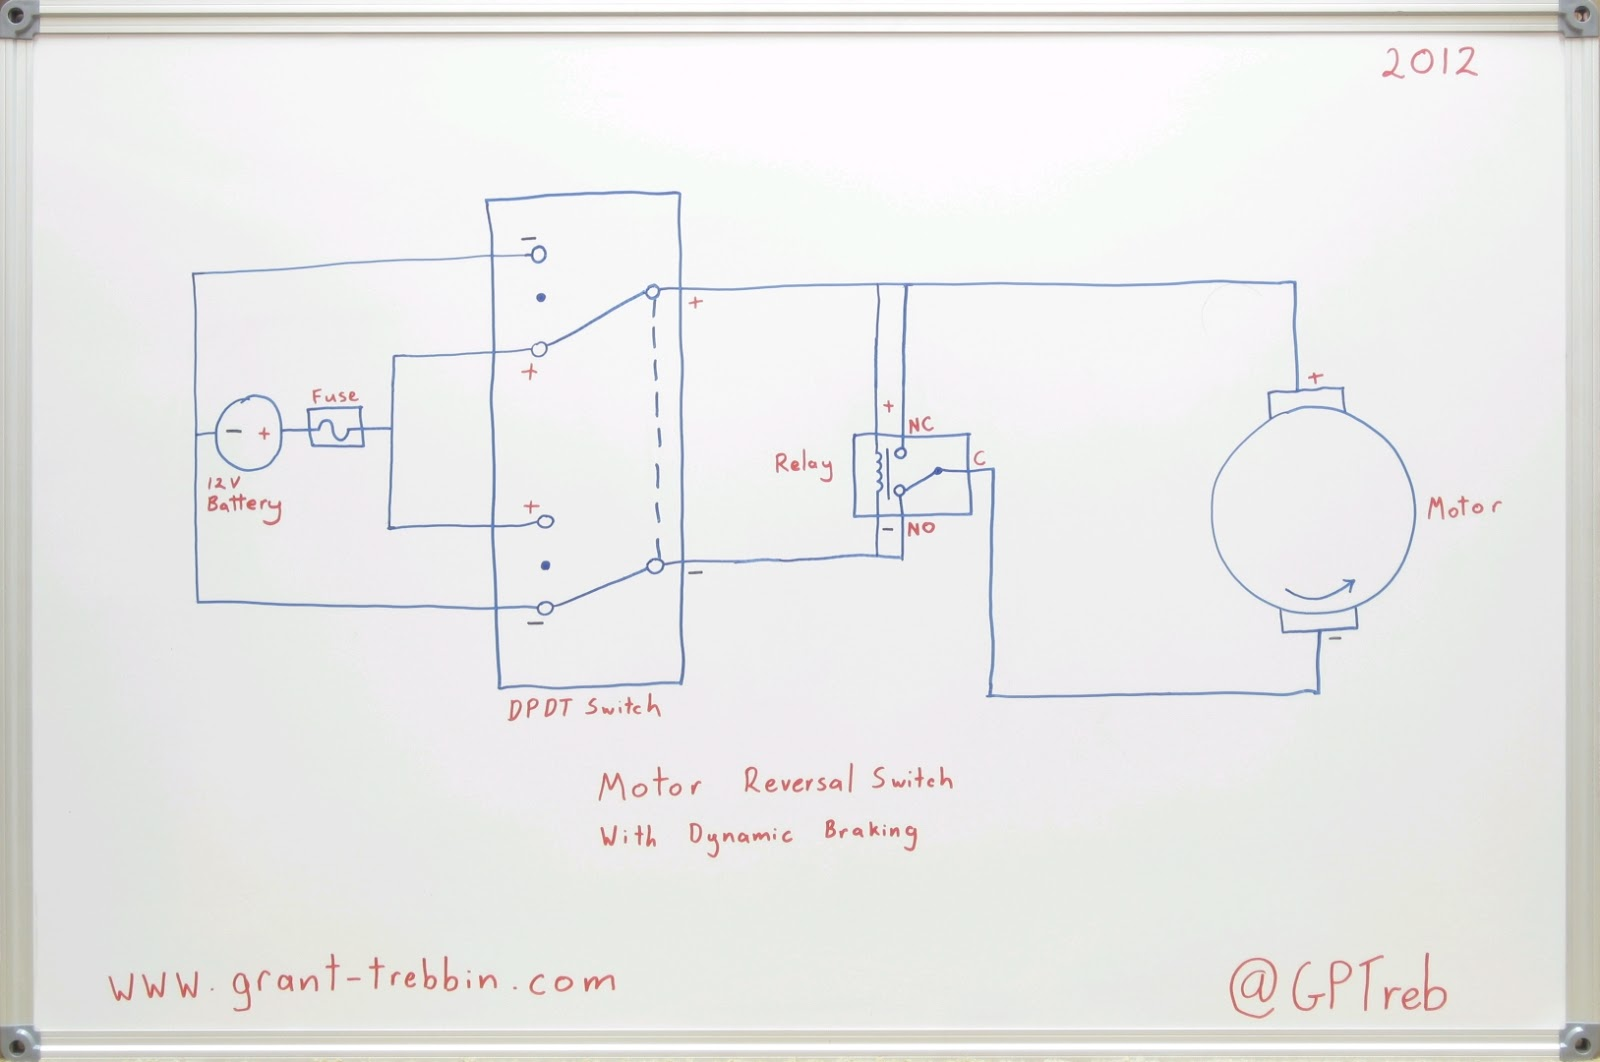 Wiring diagram 2 relay polarity winch jzgreentown diagrams asfbconference2016 Image collections